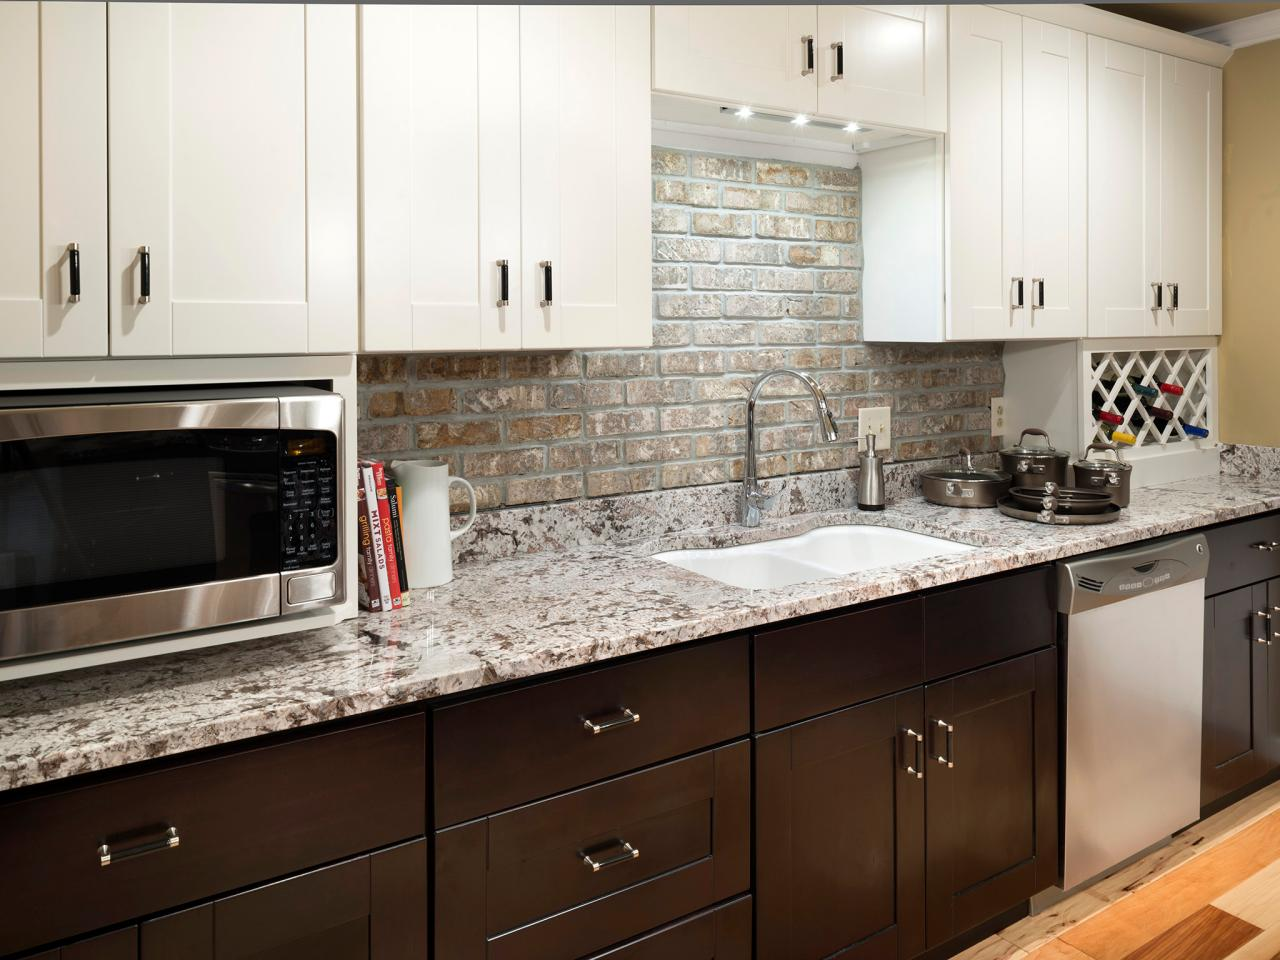 Granite Countertops For The Kitchen HGTV - Granite countertops in kitchens